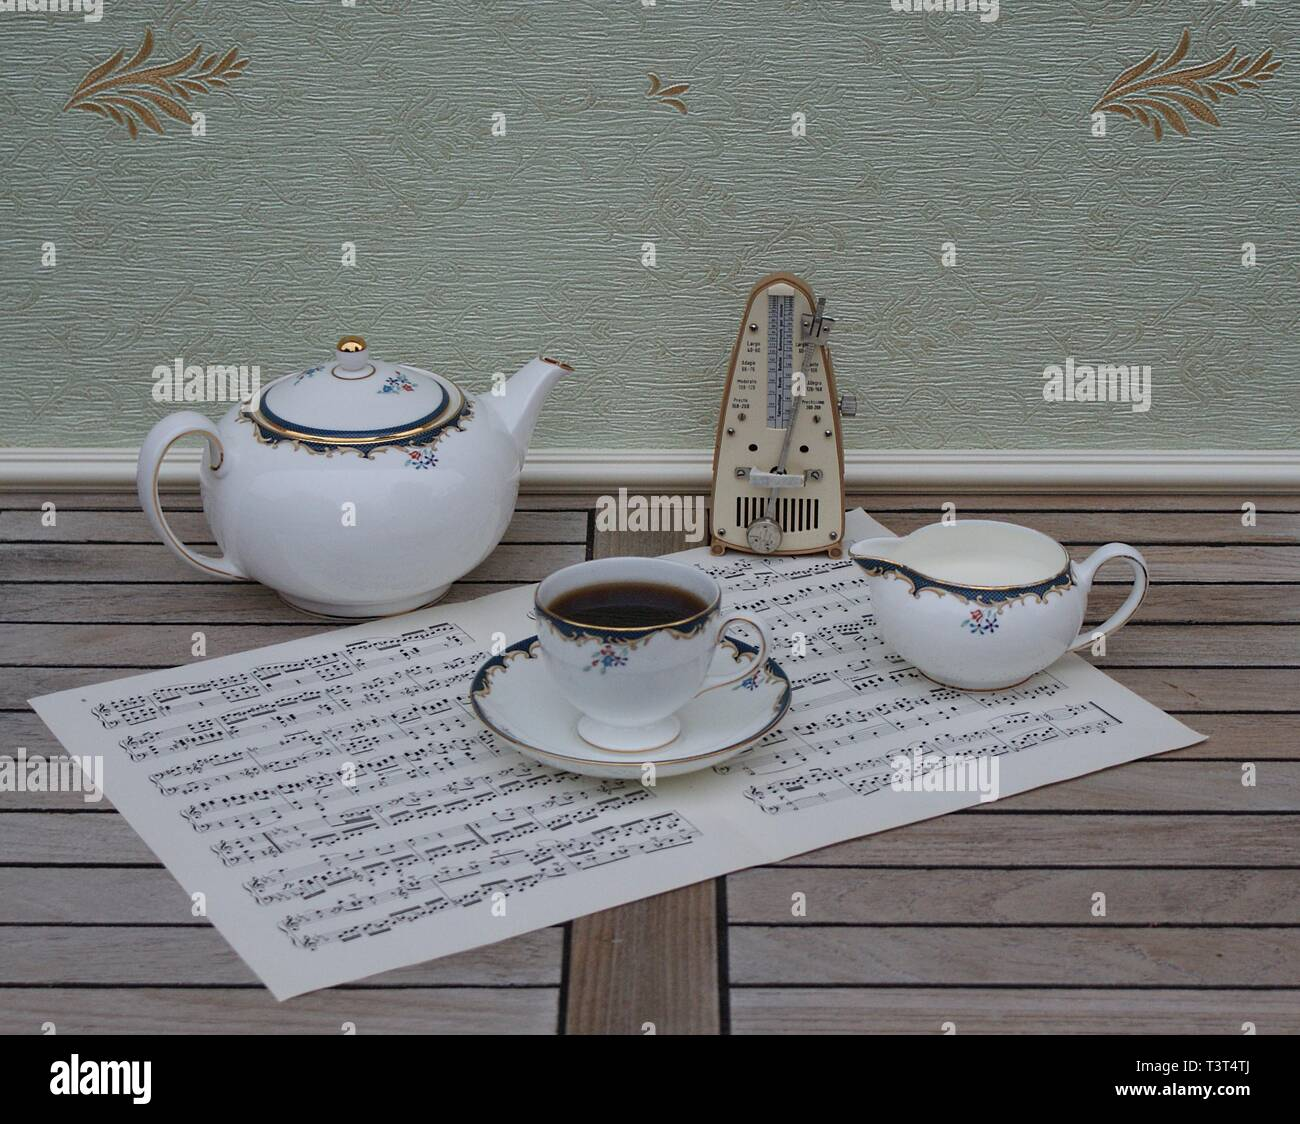 English teacup with saucer, teapot and cream jug, bone china porcelain, and a metronome for music on a sheet of music - Stock Image